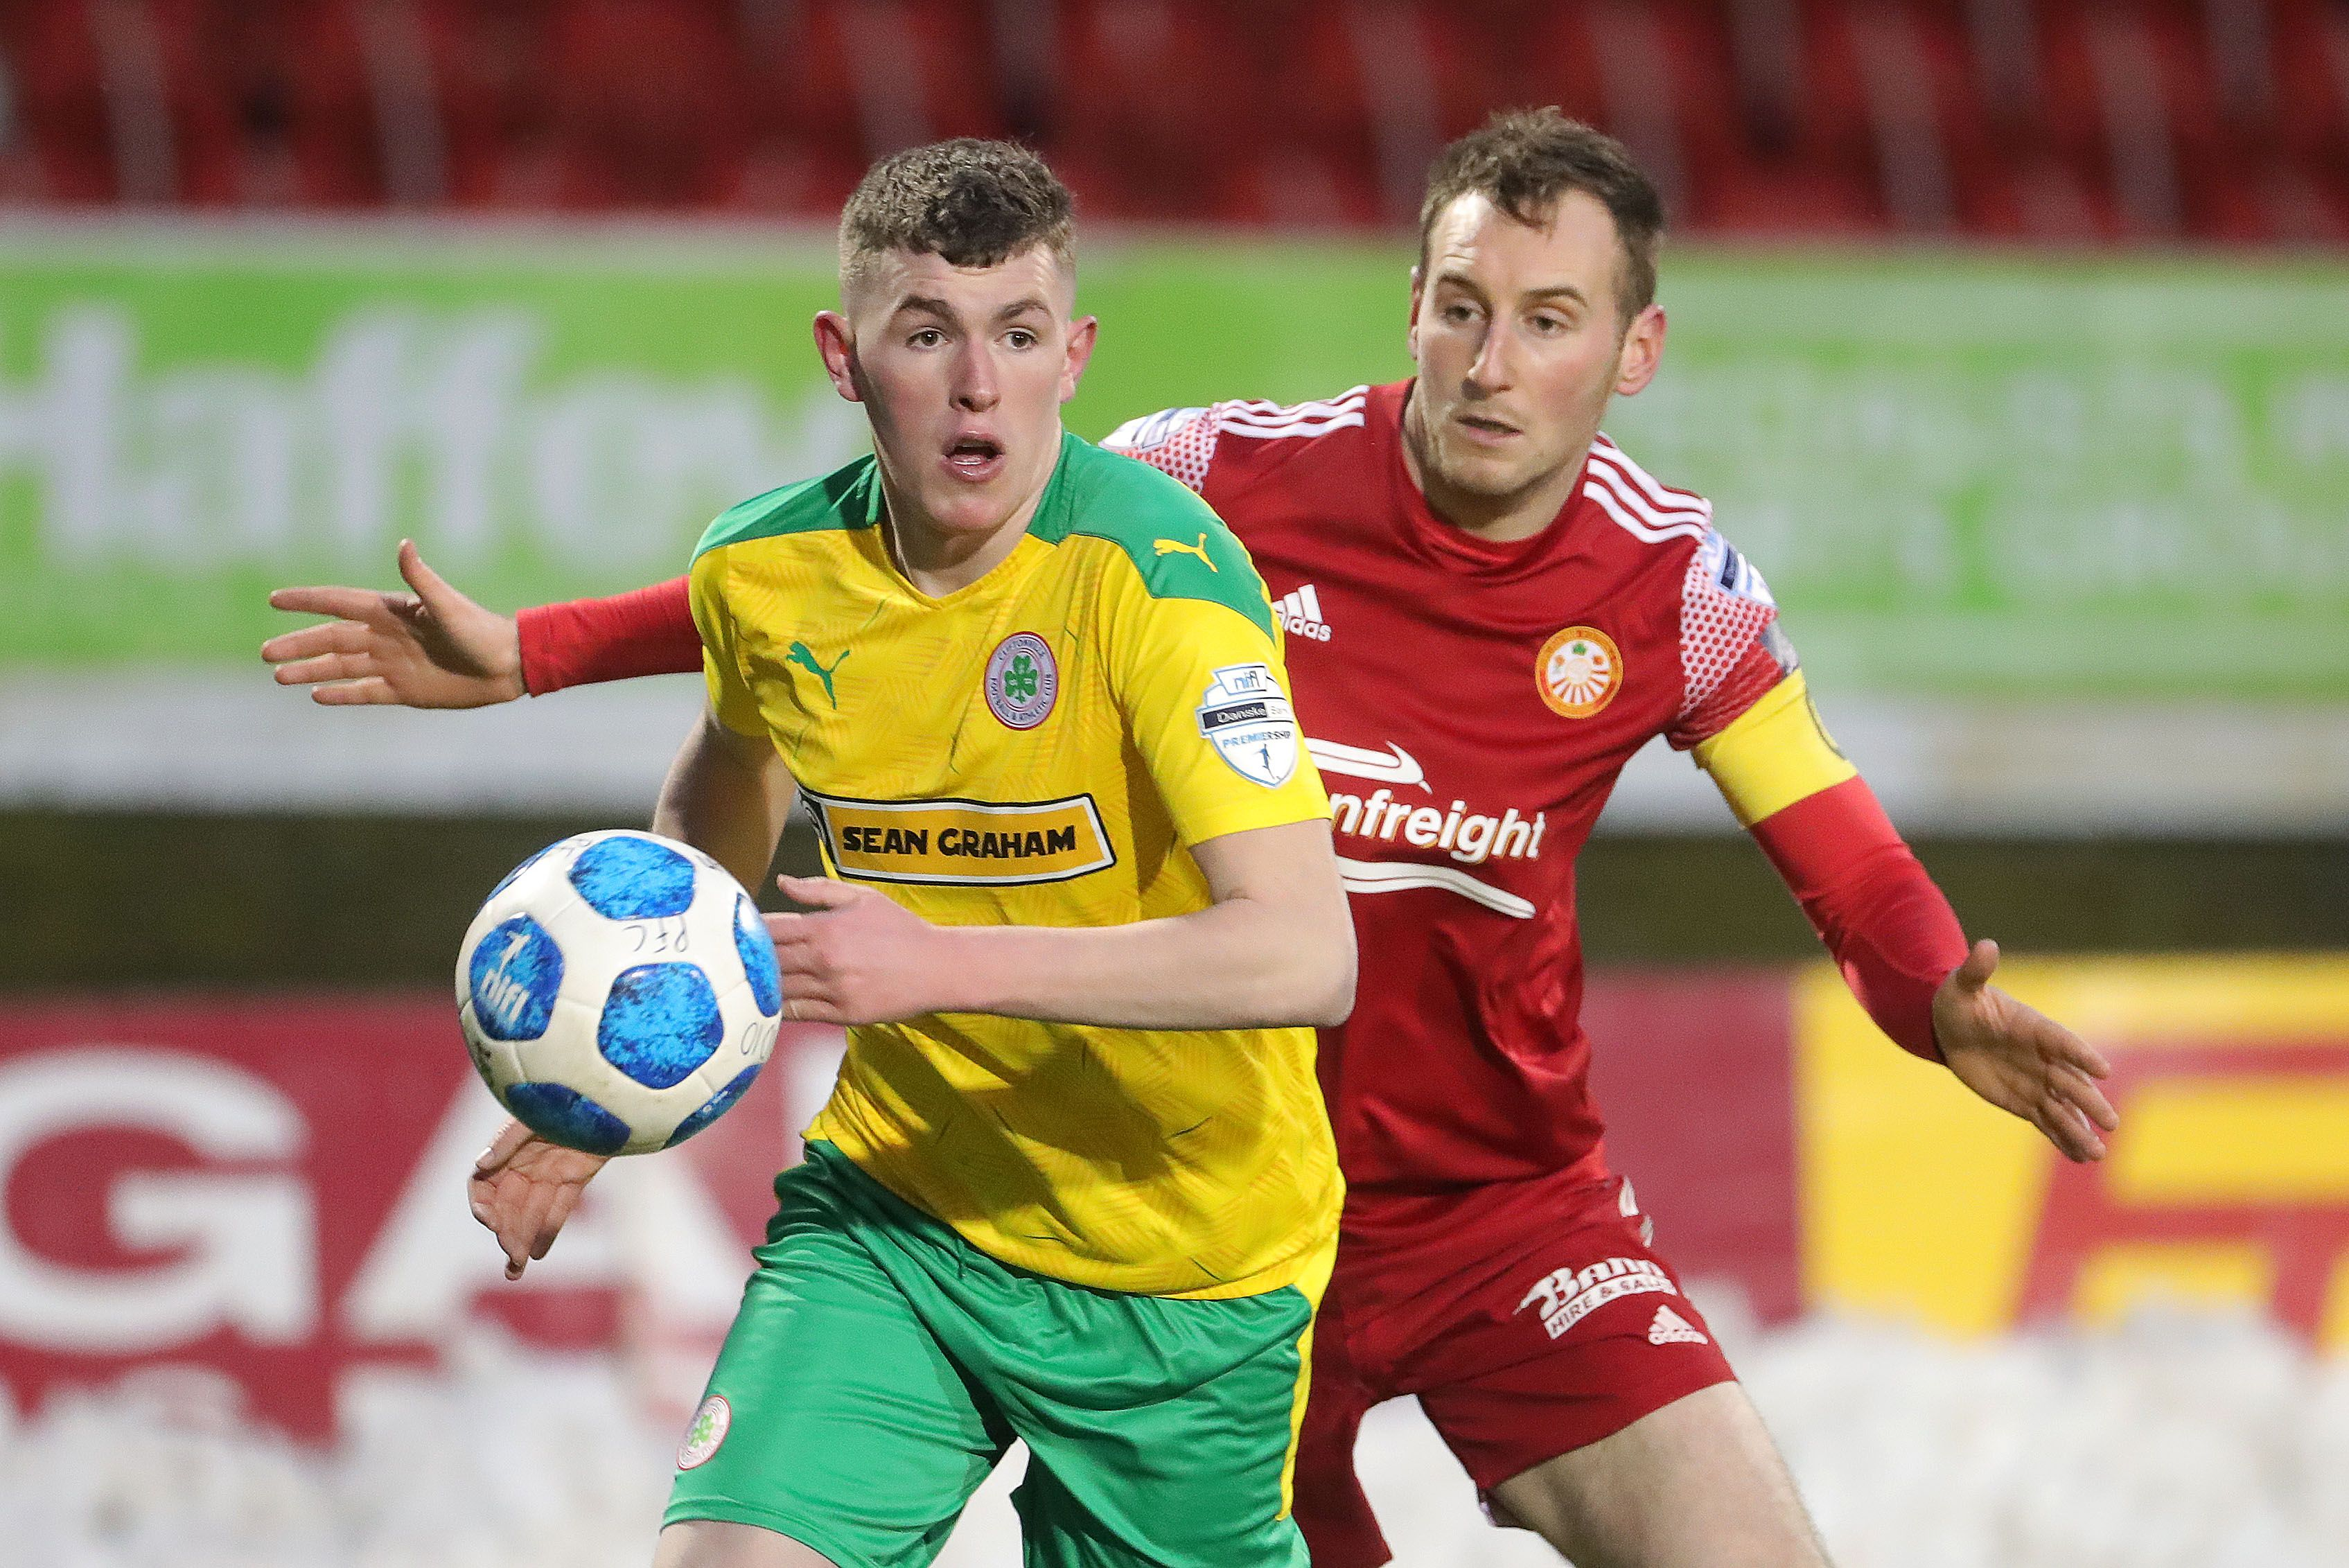 Paul Finnegan of Portadown challenges Aaron Donnelly of Cliftonville on Saturday